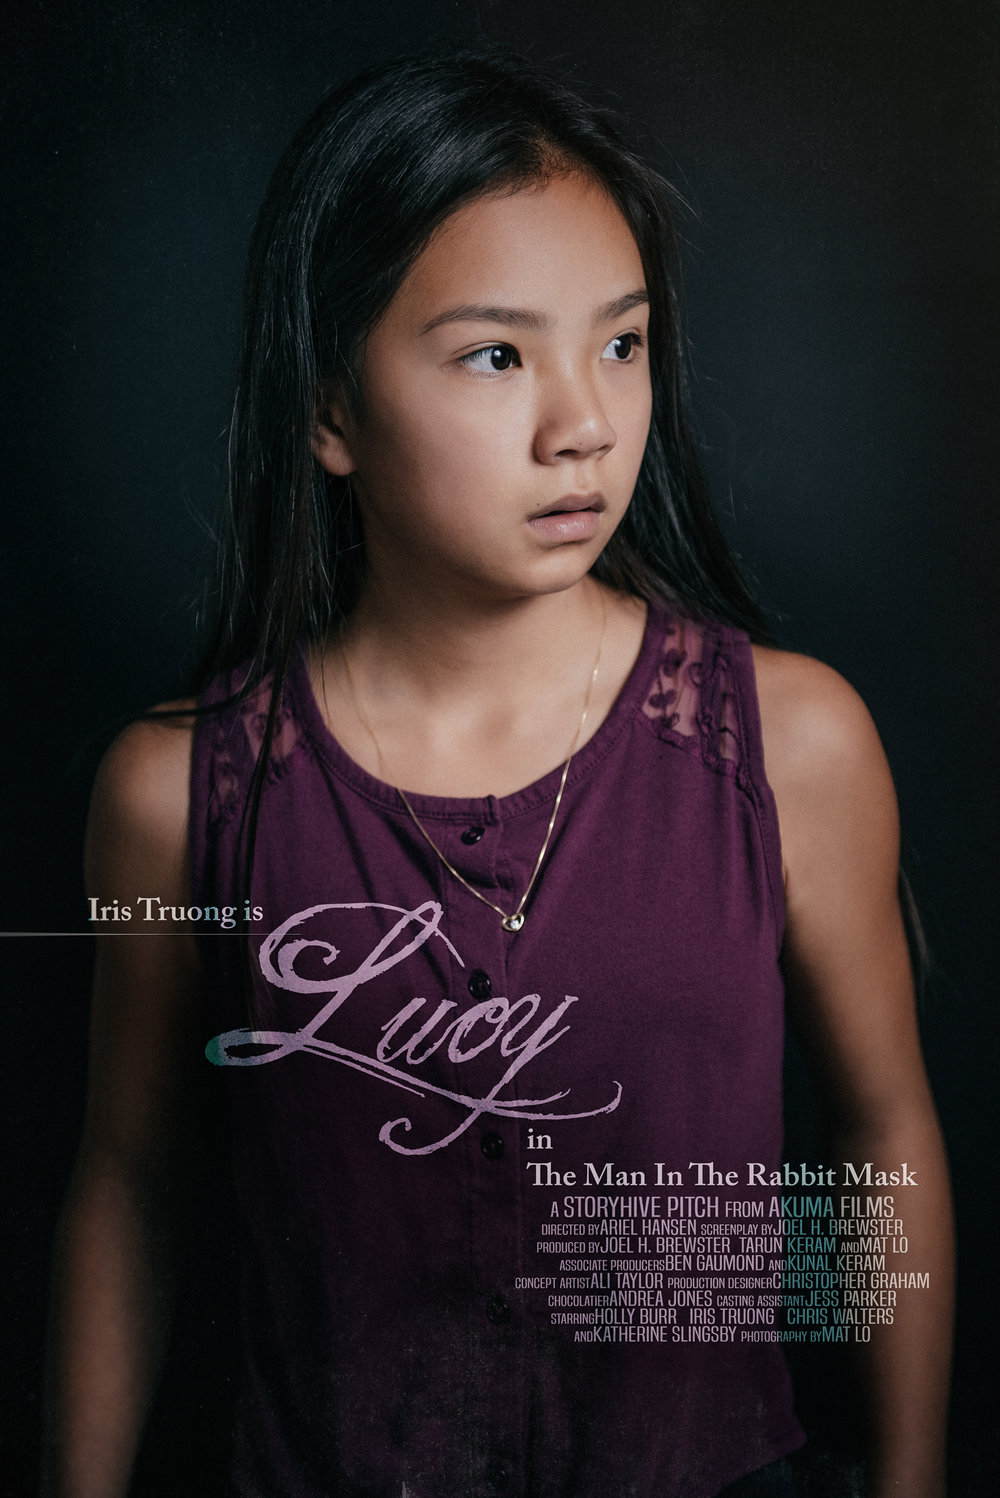 iris truong is lucy the man in the rabbit mask